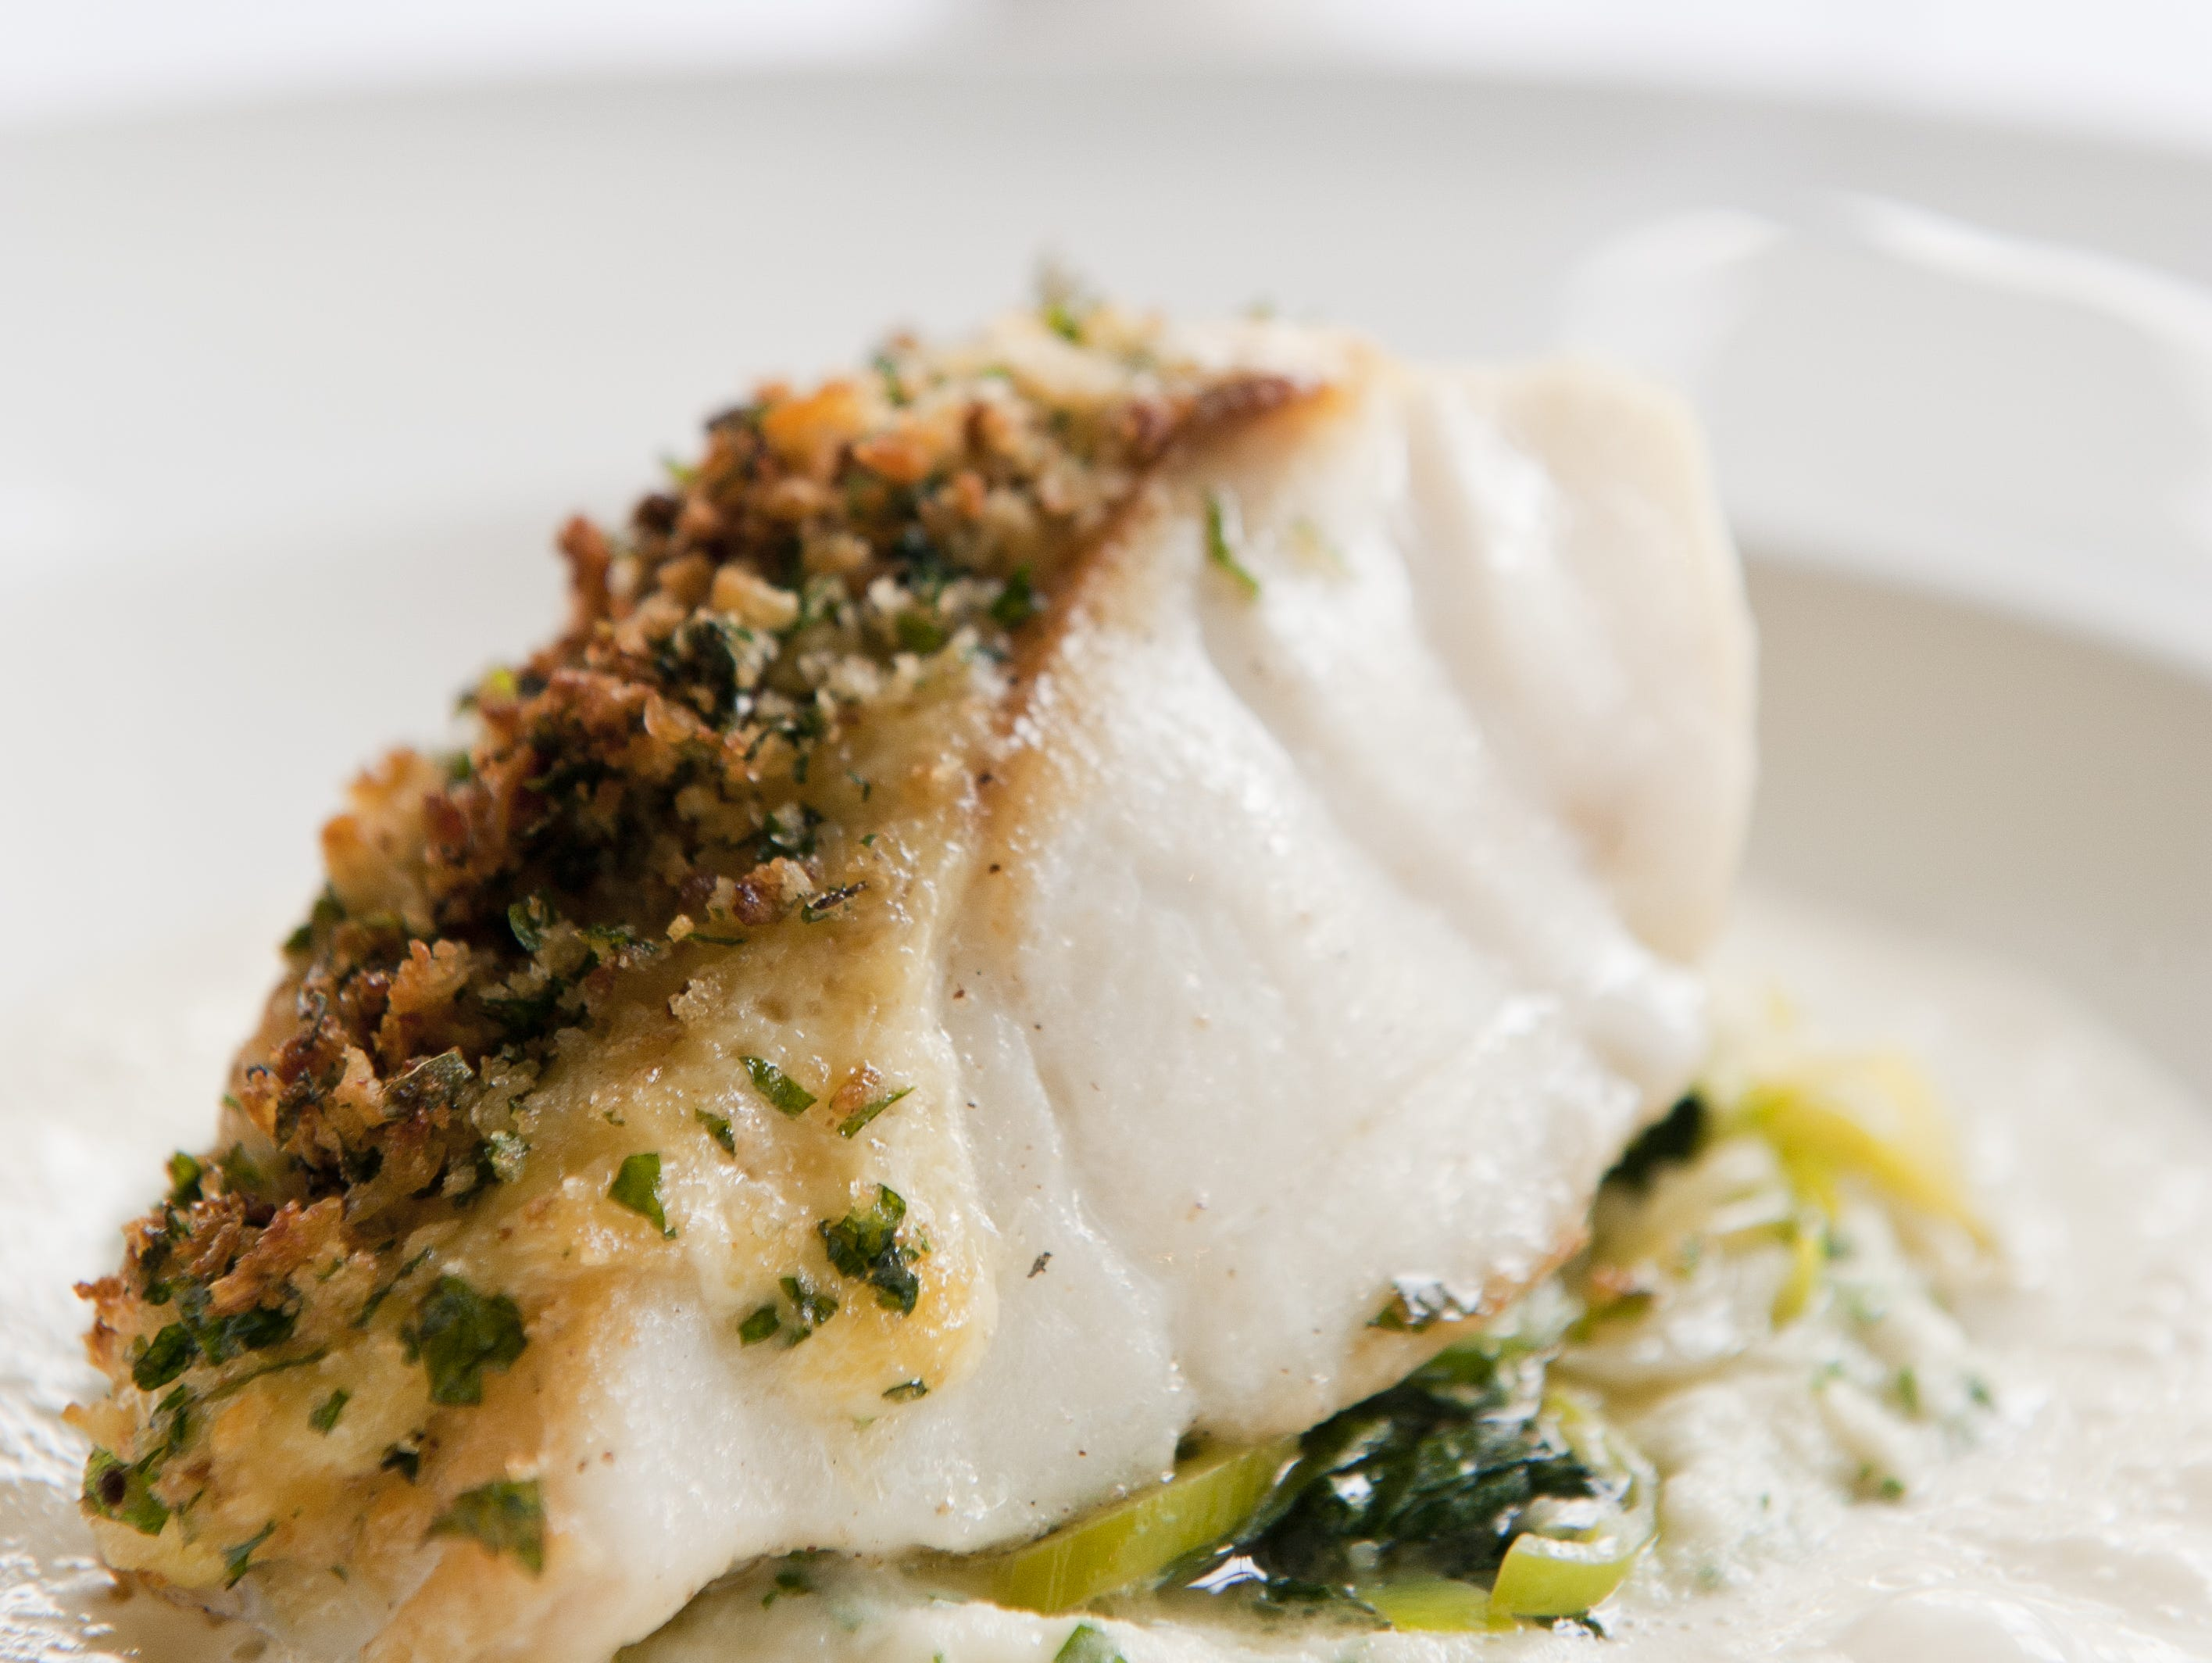 Cod is served with persillade, potato torta, leeks and parsley sauce at Tavro 13 in Swedesboro.